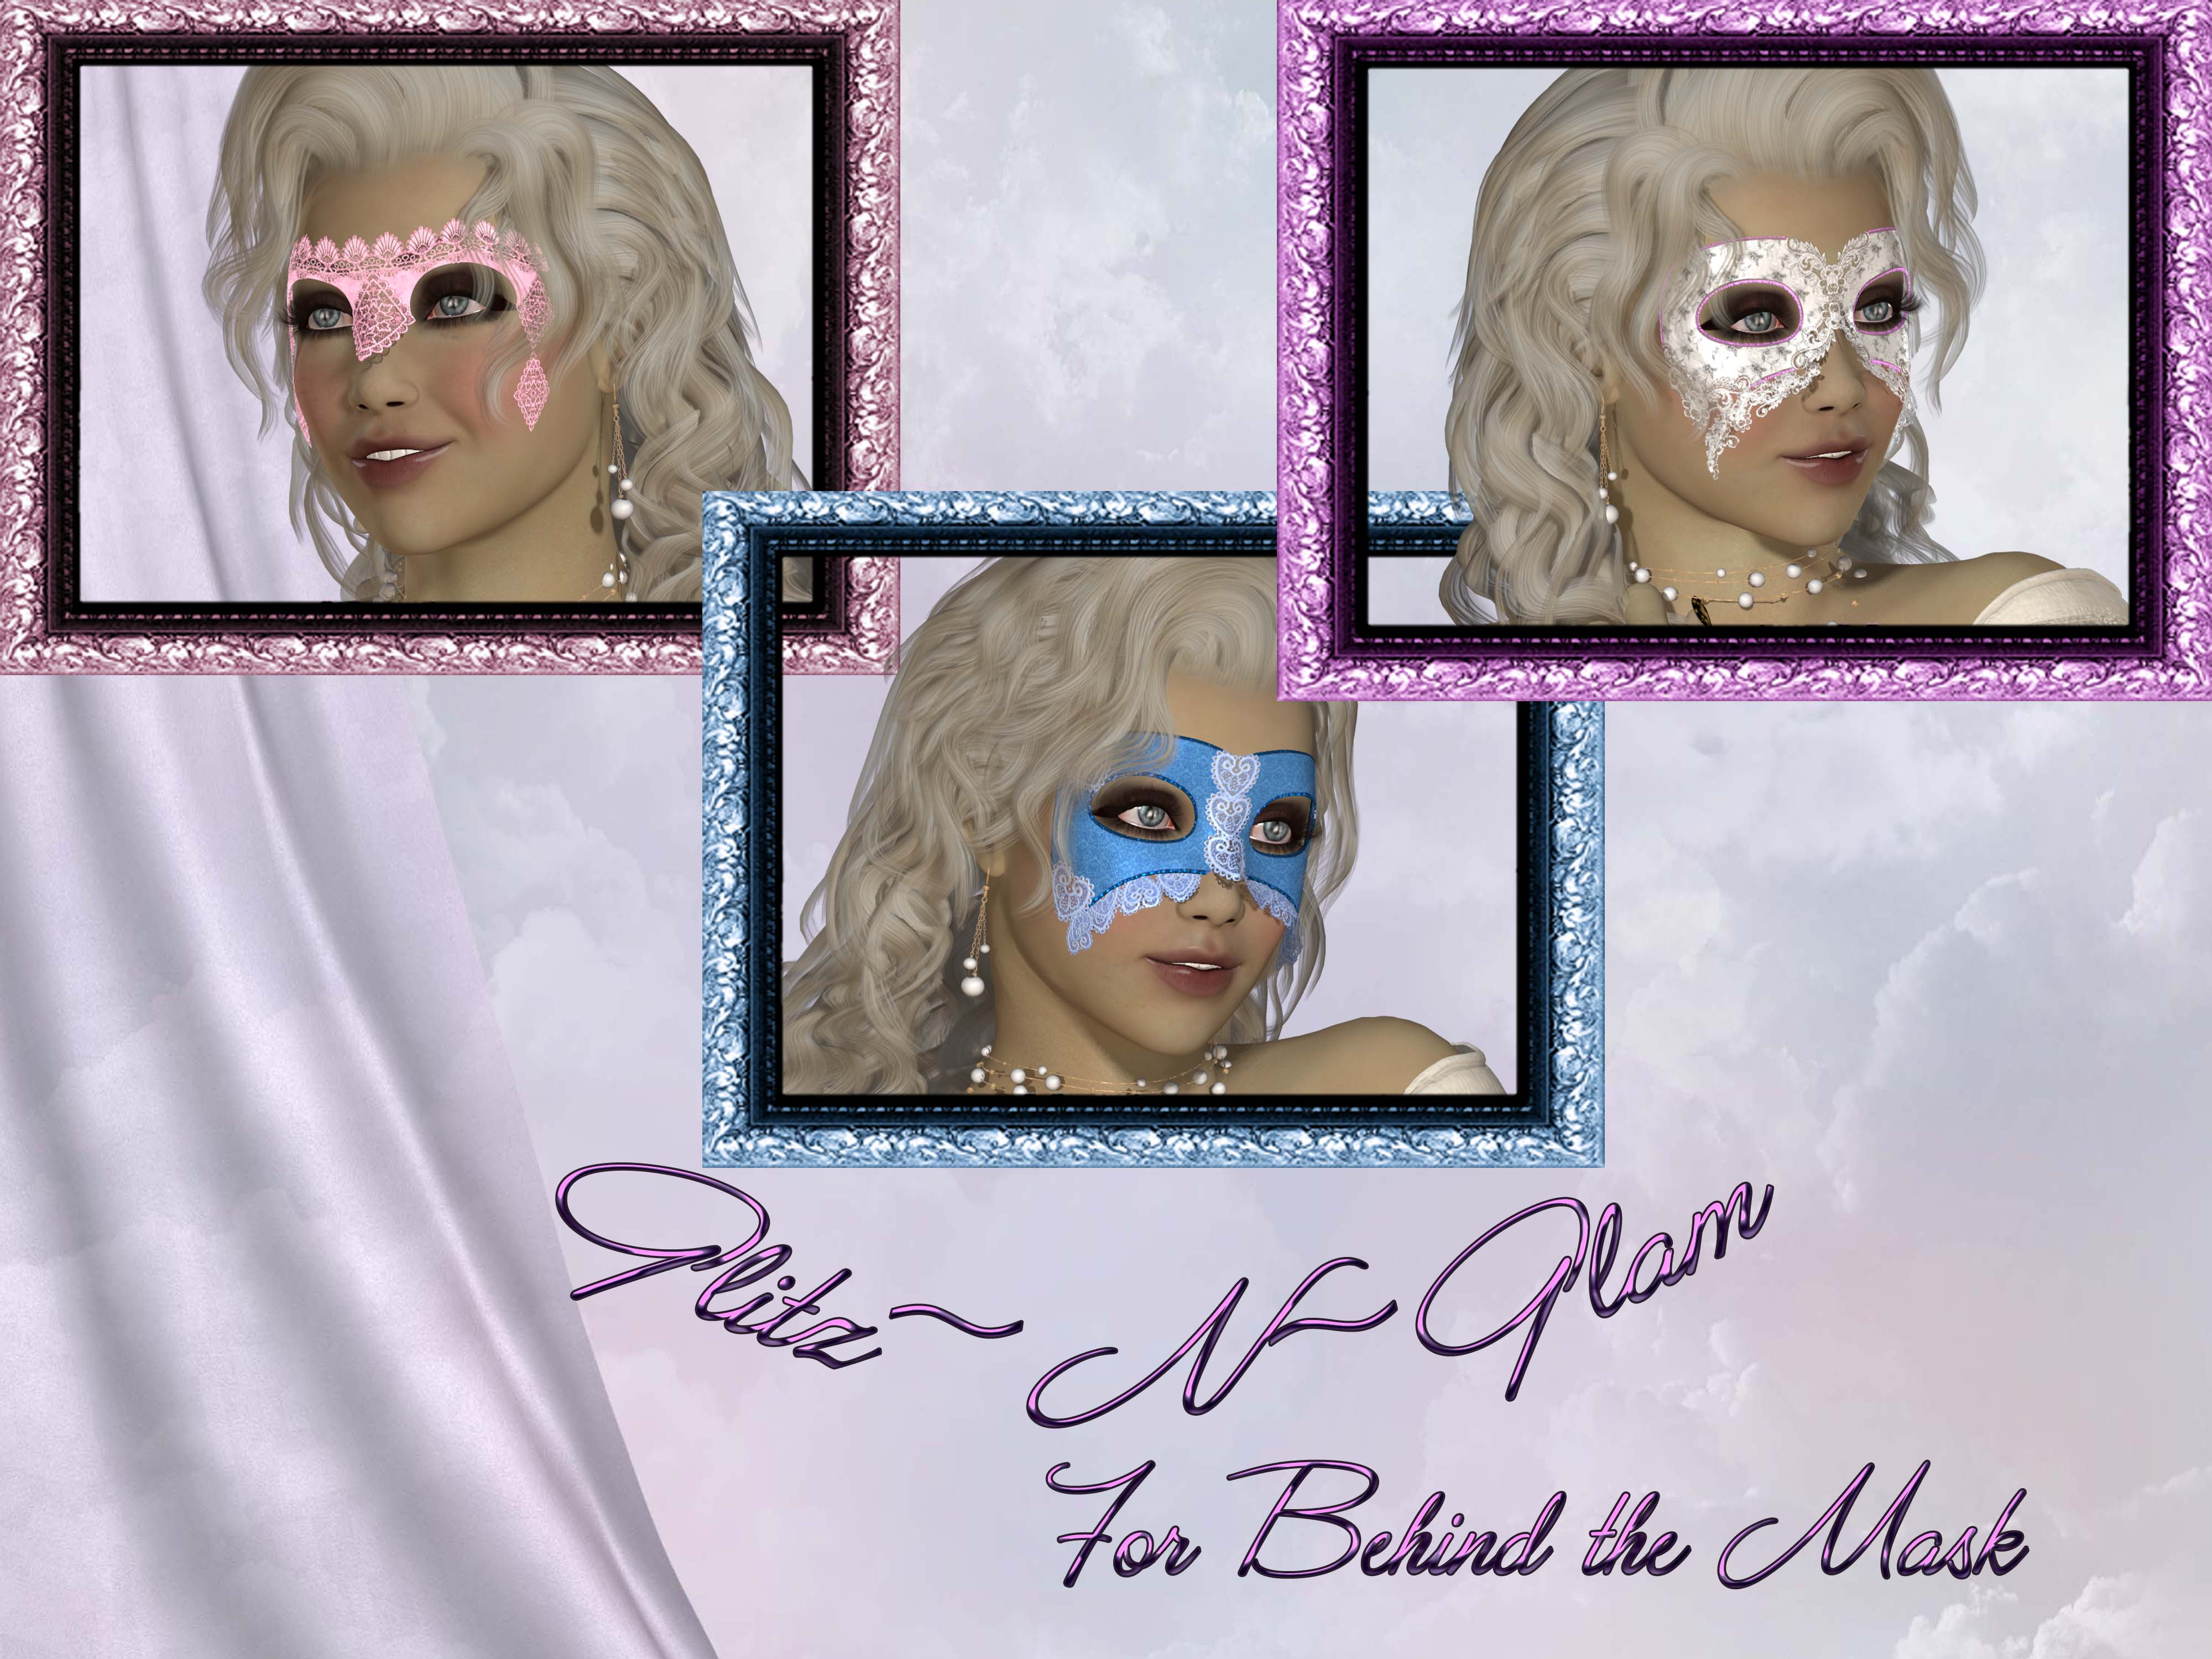 Glitz~N~Glam for Behind the Mask (Exclusive)